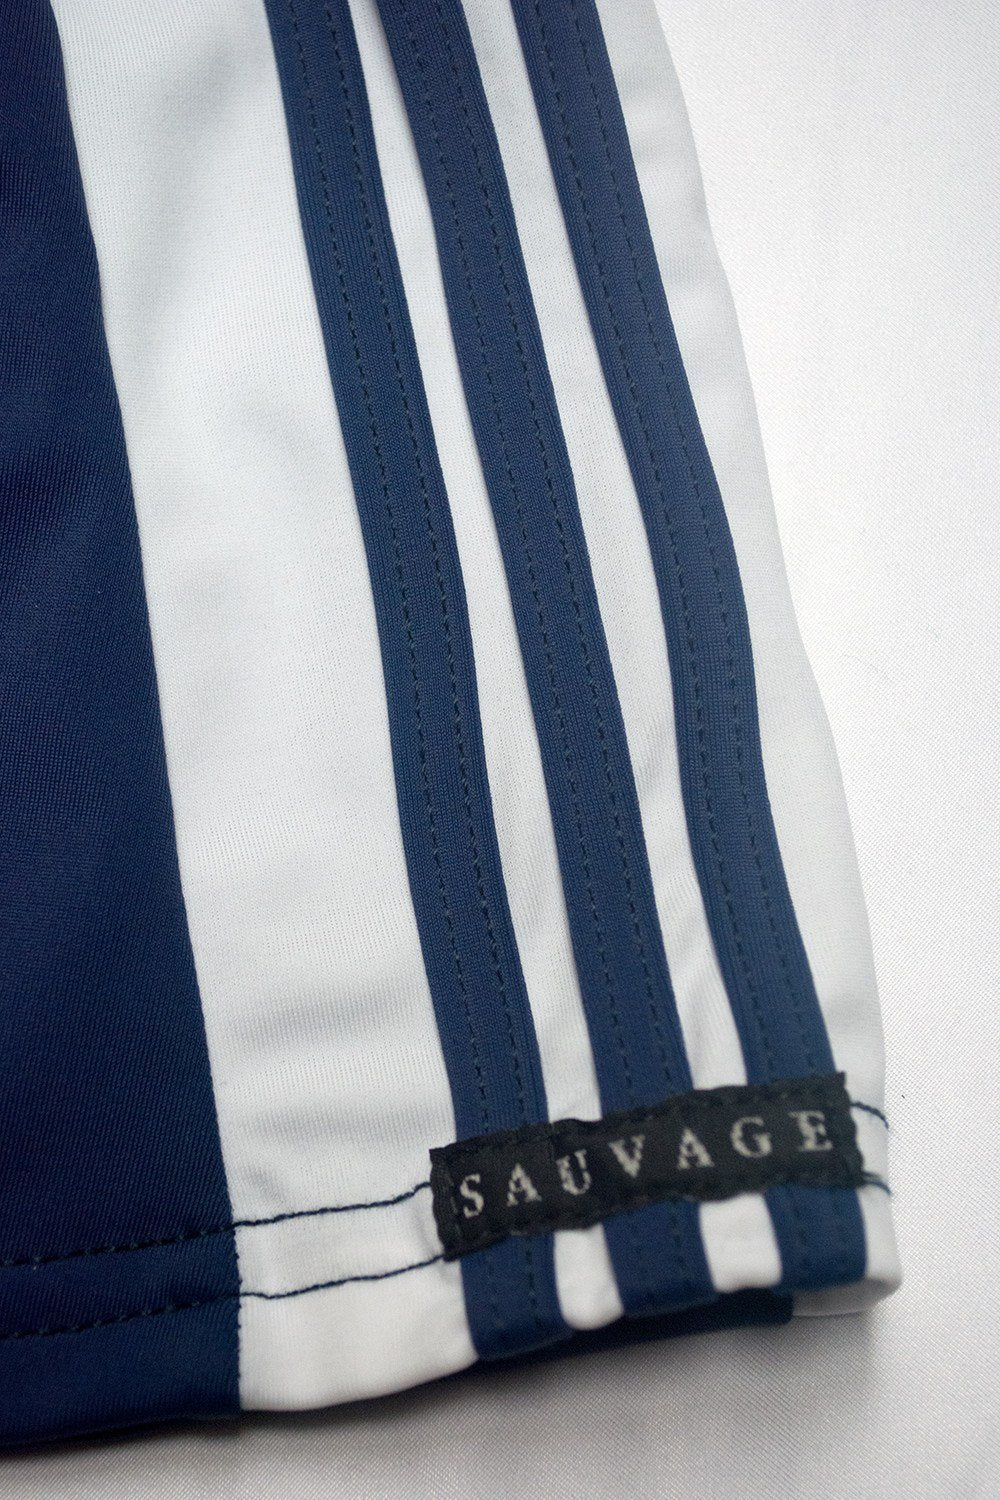 Sauvage Swimwear, Designer Swimwear from San Diego, CA made in usaFreestyle Stripe Square Cut, , Mens Swim, Men's Swim, Sauvage - 5